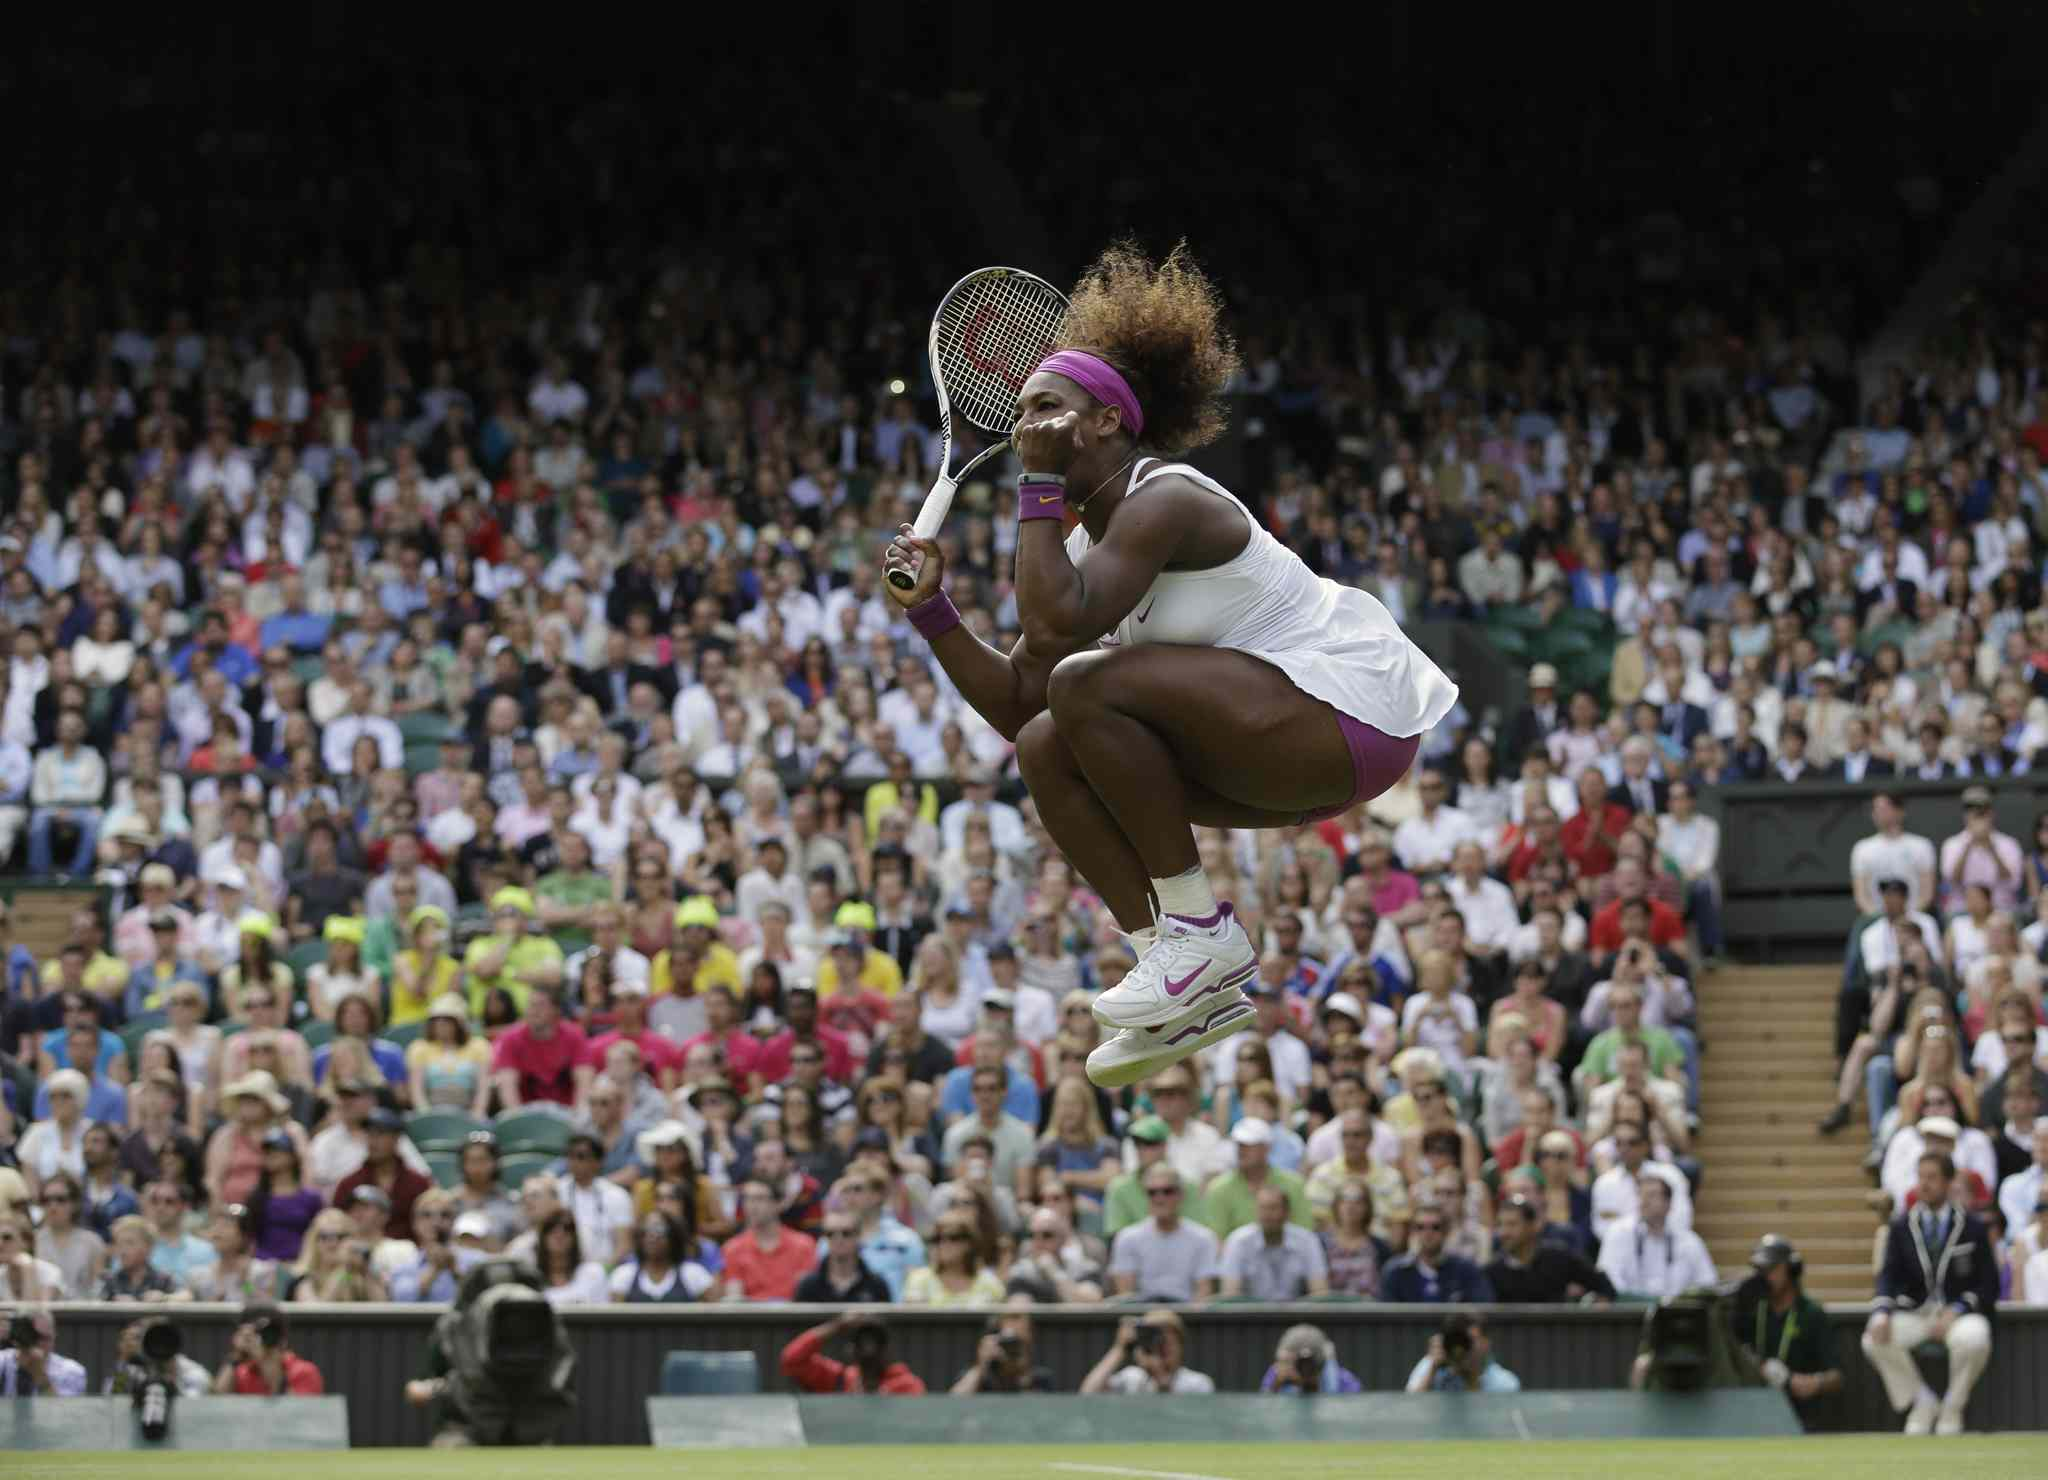 June 30, 2012: - Serena Williams of the United States reacts after winning against Zheng Jie of China during a third round women's singles match at the All England Lawn Tennis Championships at Wimbledon, England.